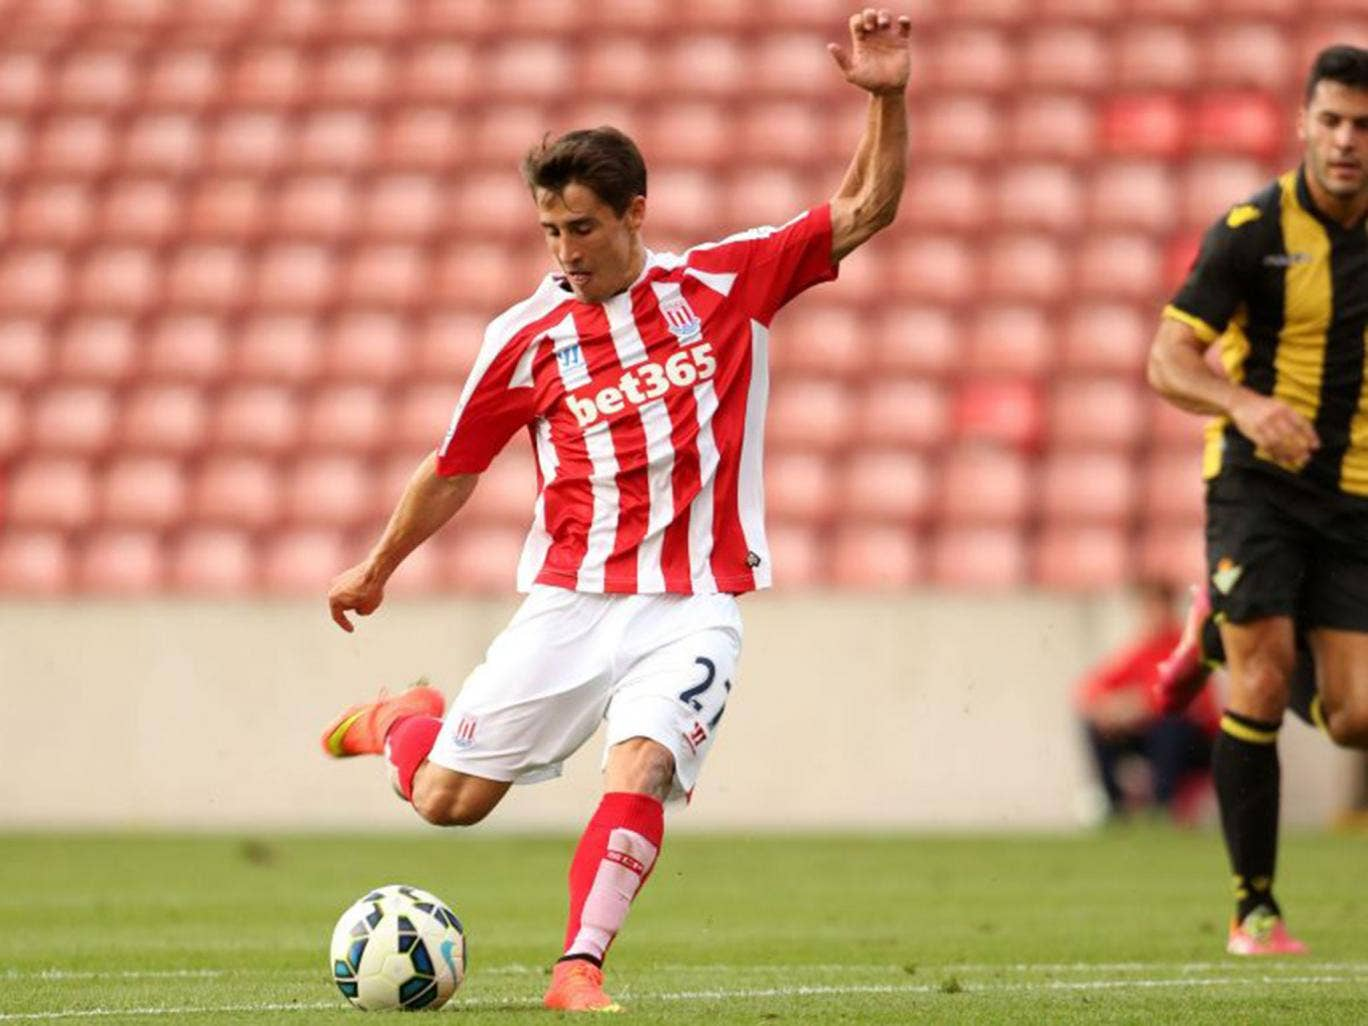 Bojan Krkic scored another good goal for Stoke City - he now has three in three matches